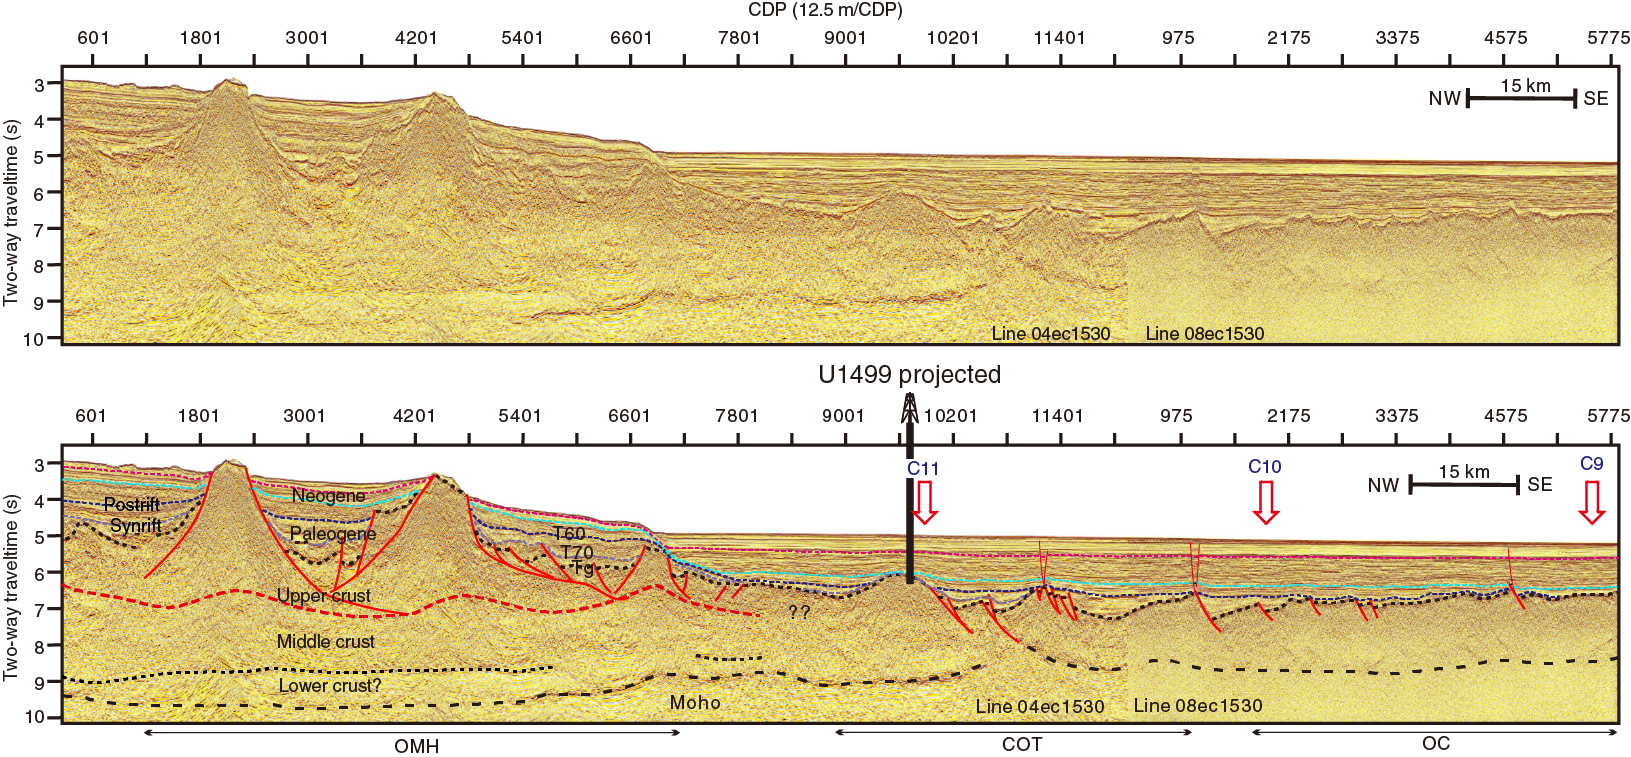 Iodp Publications Volume 367 368 Expedition Reports Site U1500 1996 Lowe 170 Basic Boat Wiring Diagram F9 Uninterpreted And Simplified Interpretation Seismic Profile 1530